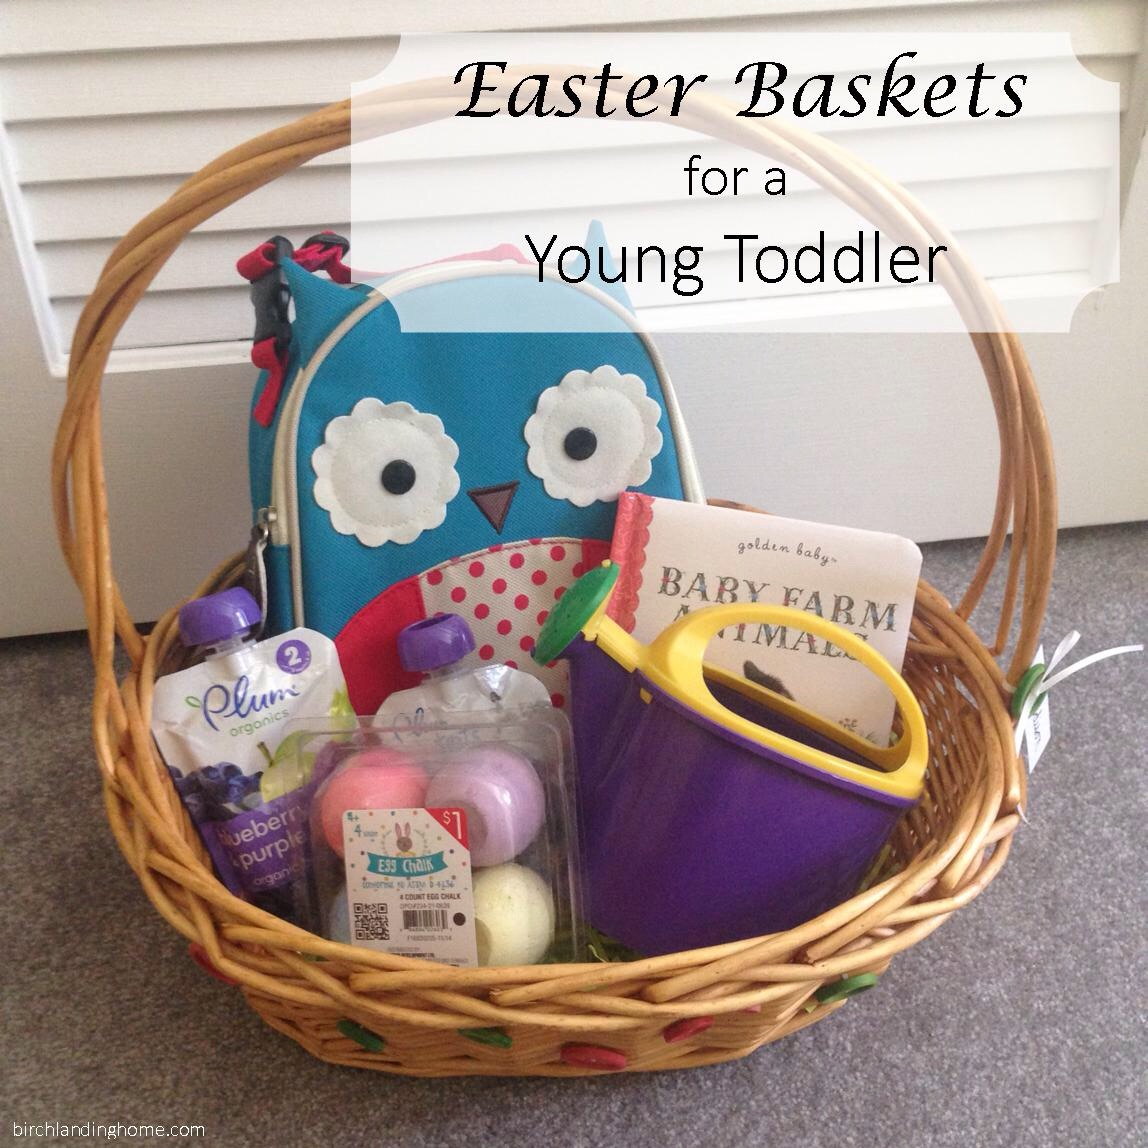 Inexpensive Easter Basket Ideas for a Young Toddler